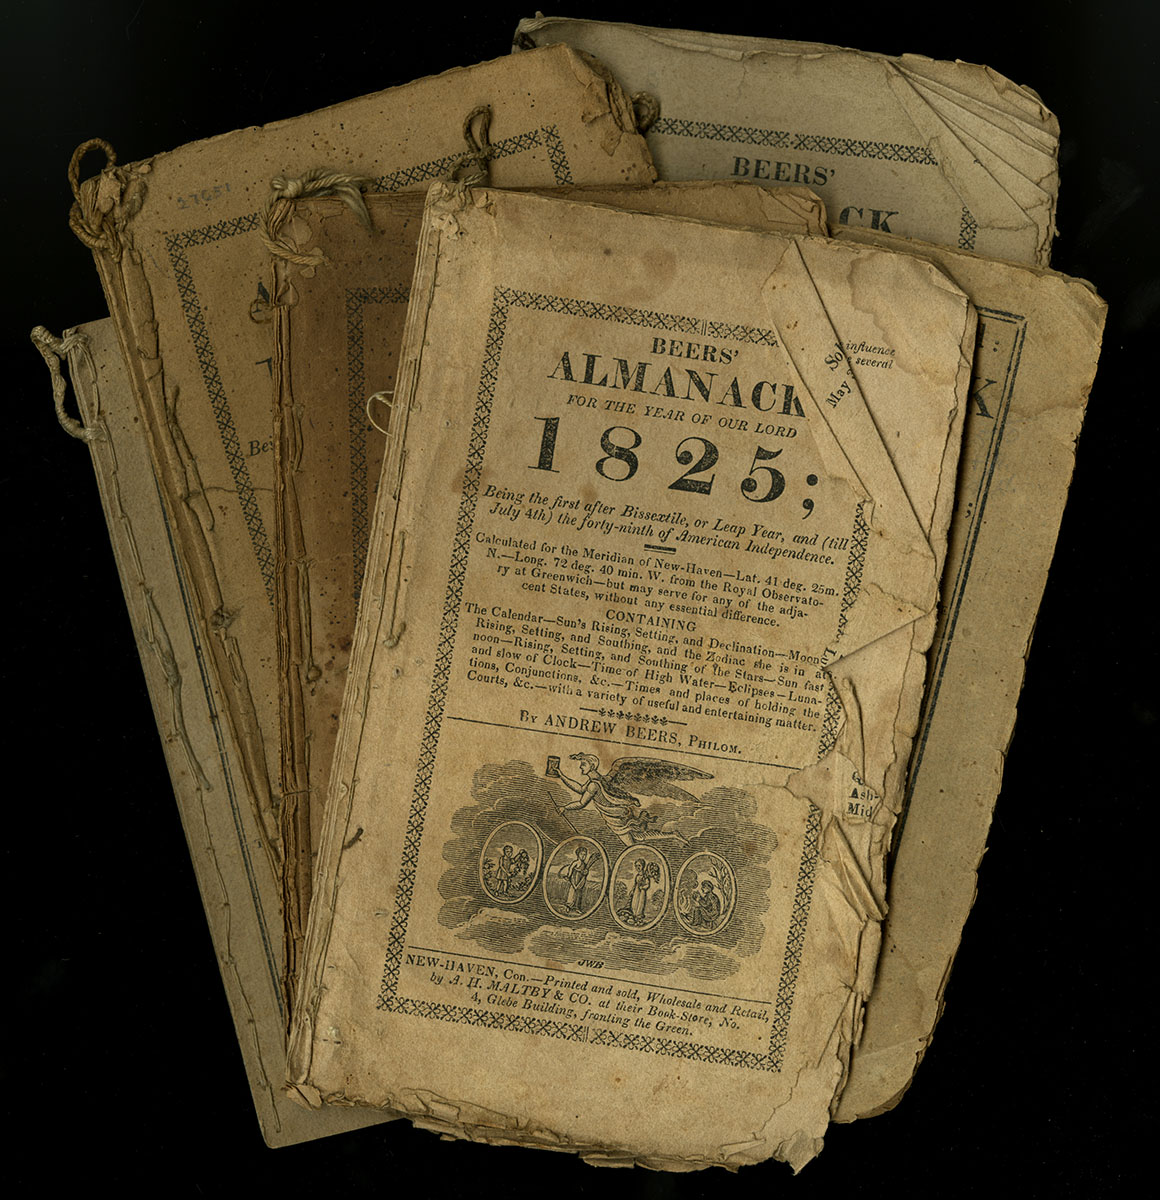 Assortment of Almanacks, 1808-1825. Hutchin's Improved, 1808; Beers' 1824; Beers' 1824; Beers' 1825, Beers' 1825, Beers' 1824. Anonymous gift.